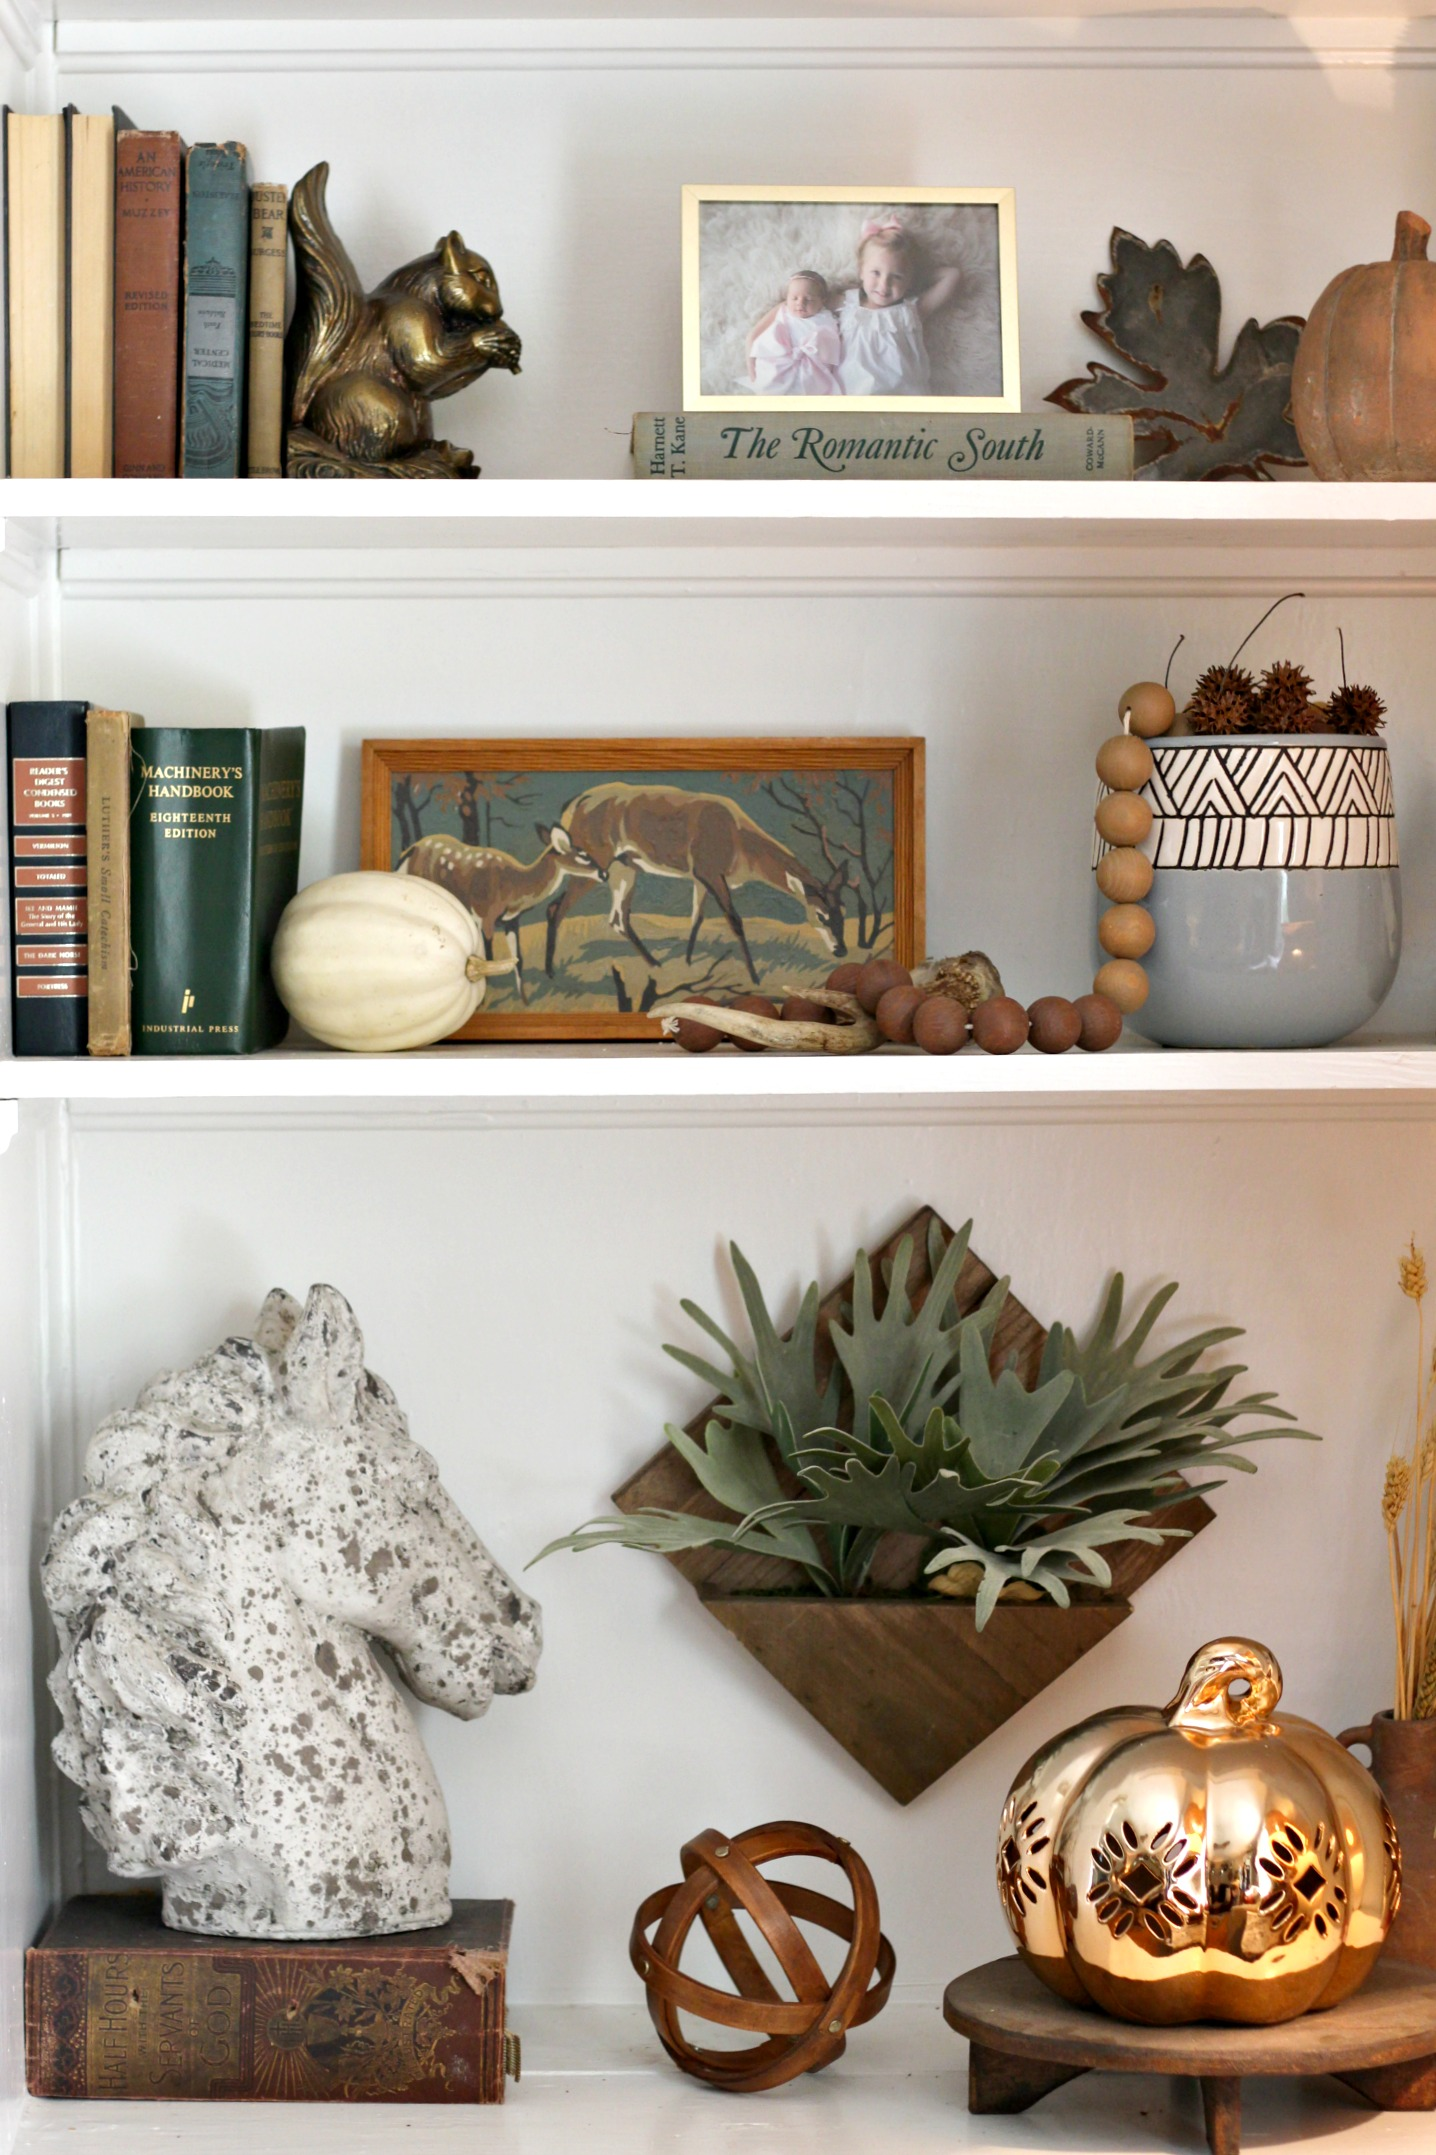 Wood sphere:  At Home  |  Copper pumpkin:  Homegoods  | Horse statue:  Homegoods  | Hanging faux plant:  Target (old)  | Squirrel bookend: vintage|  Old books: vintage/thrifted| Wood beads:  Target   | Blue planter pot:  At Home   |  Deer paint-by-number: thrifted| Metal leaf:  The Findery